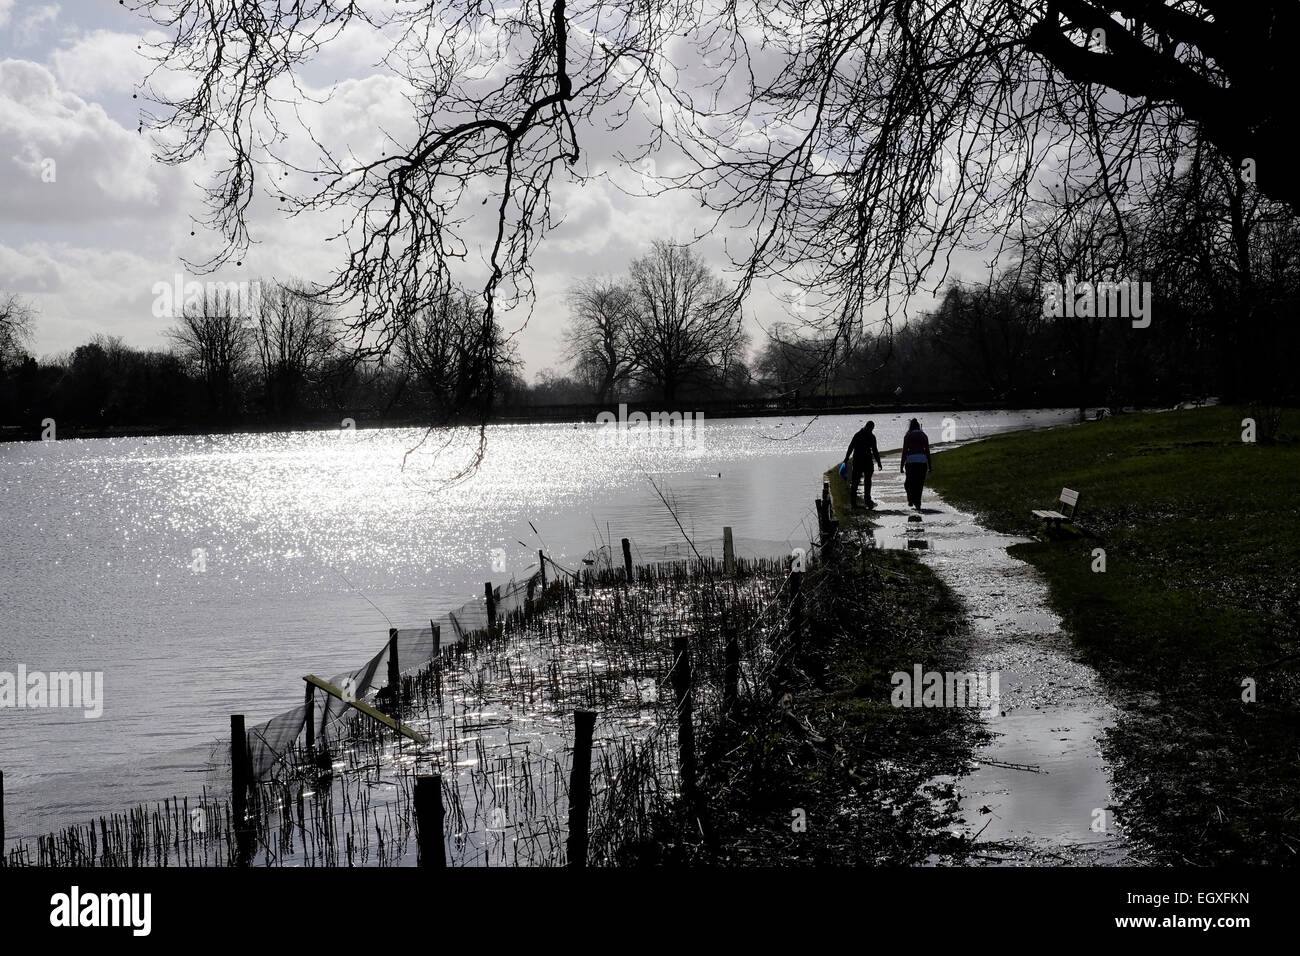 A couple in silhouette walking by Hampstead Heath ponds, London - Stock Image